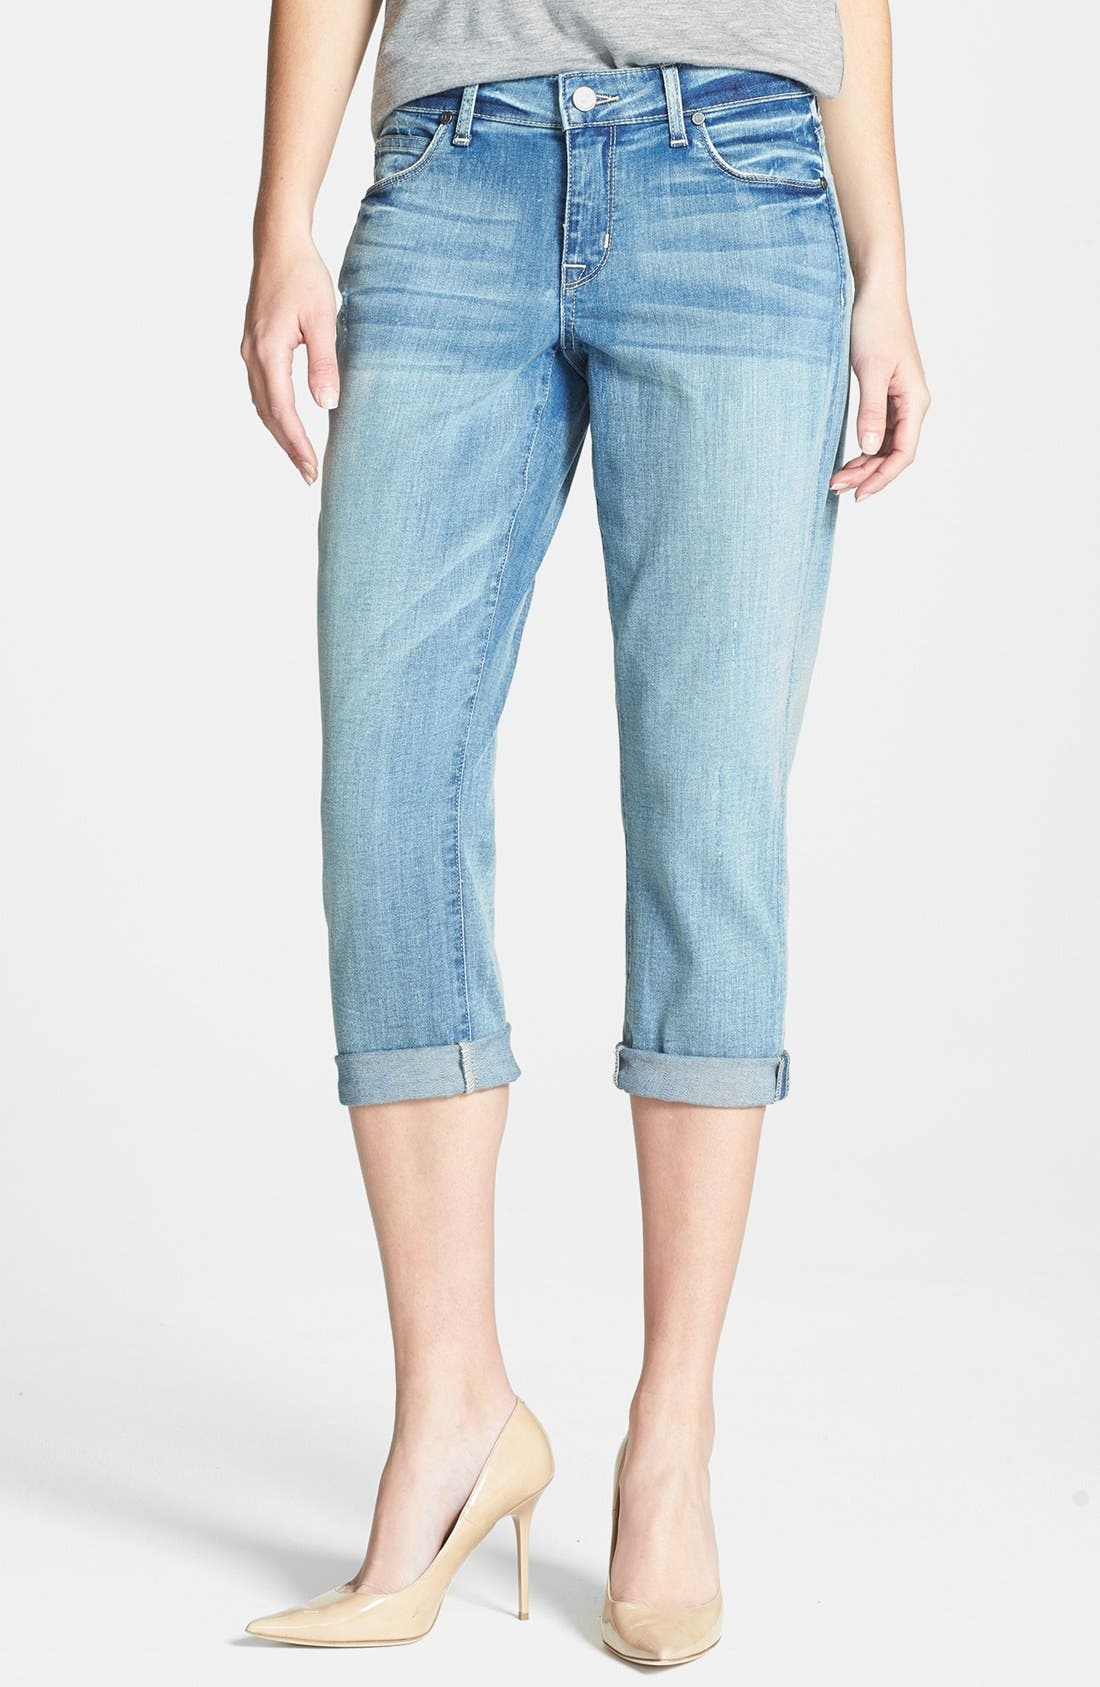 Alternate Image 1 Selected - CJ by Cookie Johnson 'Rejoice' Stretch Crop Boyfriend Jeans (Simpson)